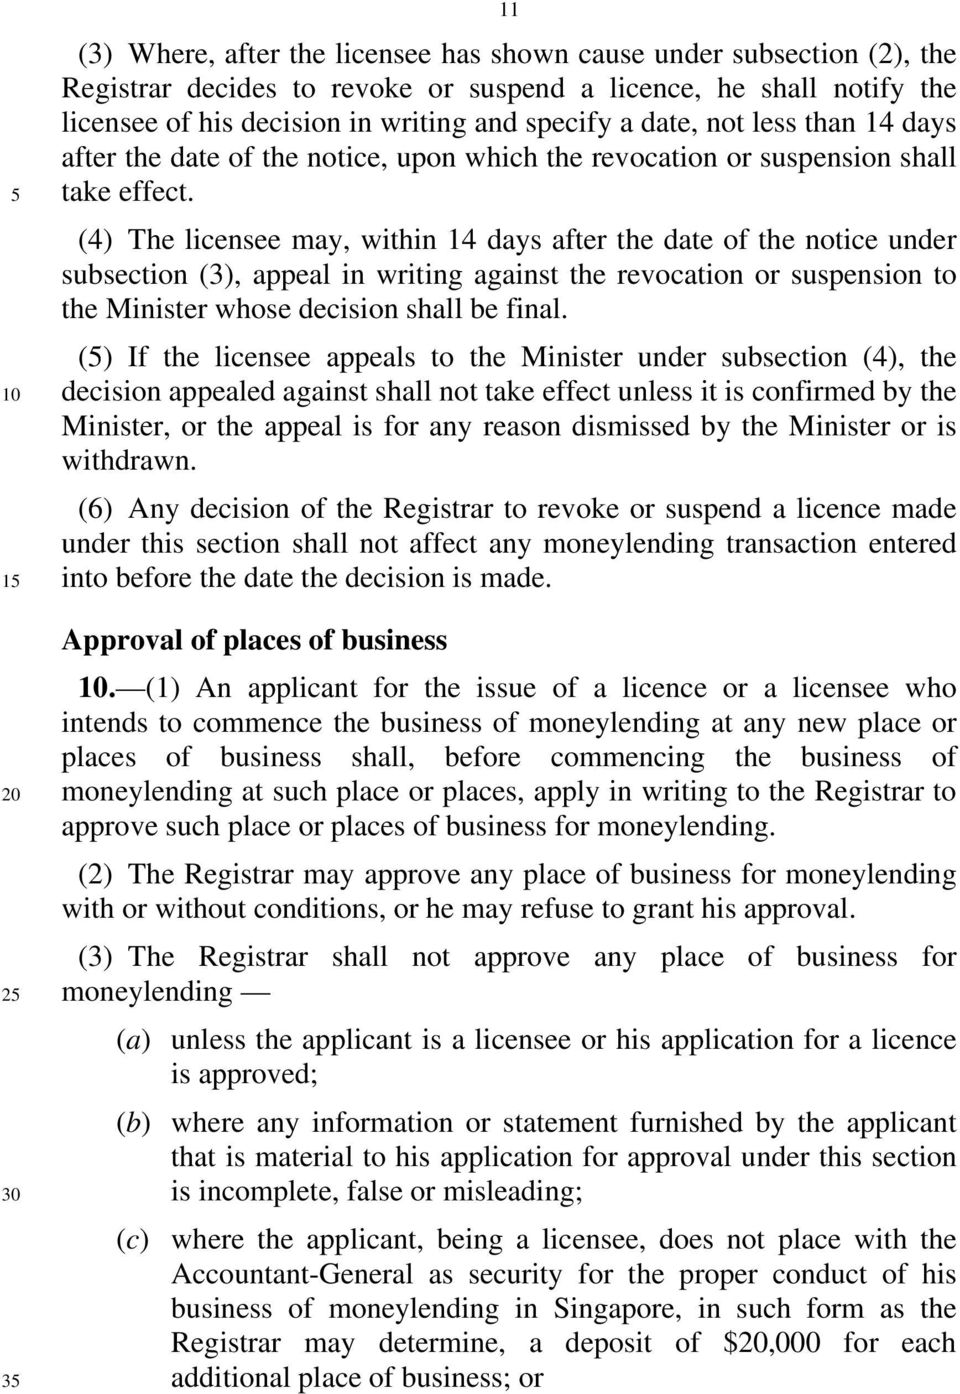 (4) The licensee may, within 14 days after the date of the notice under subsection (3), appeal in writing against the revocation or suspension to the Minister whose decision shall be final.